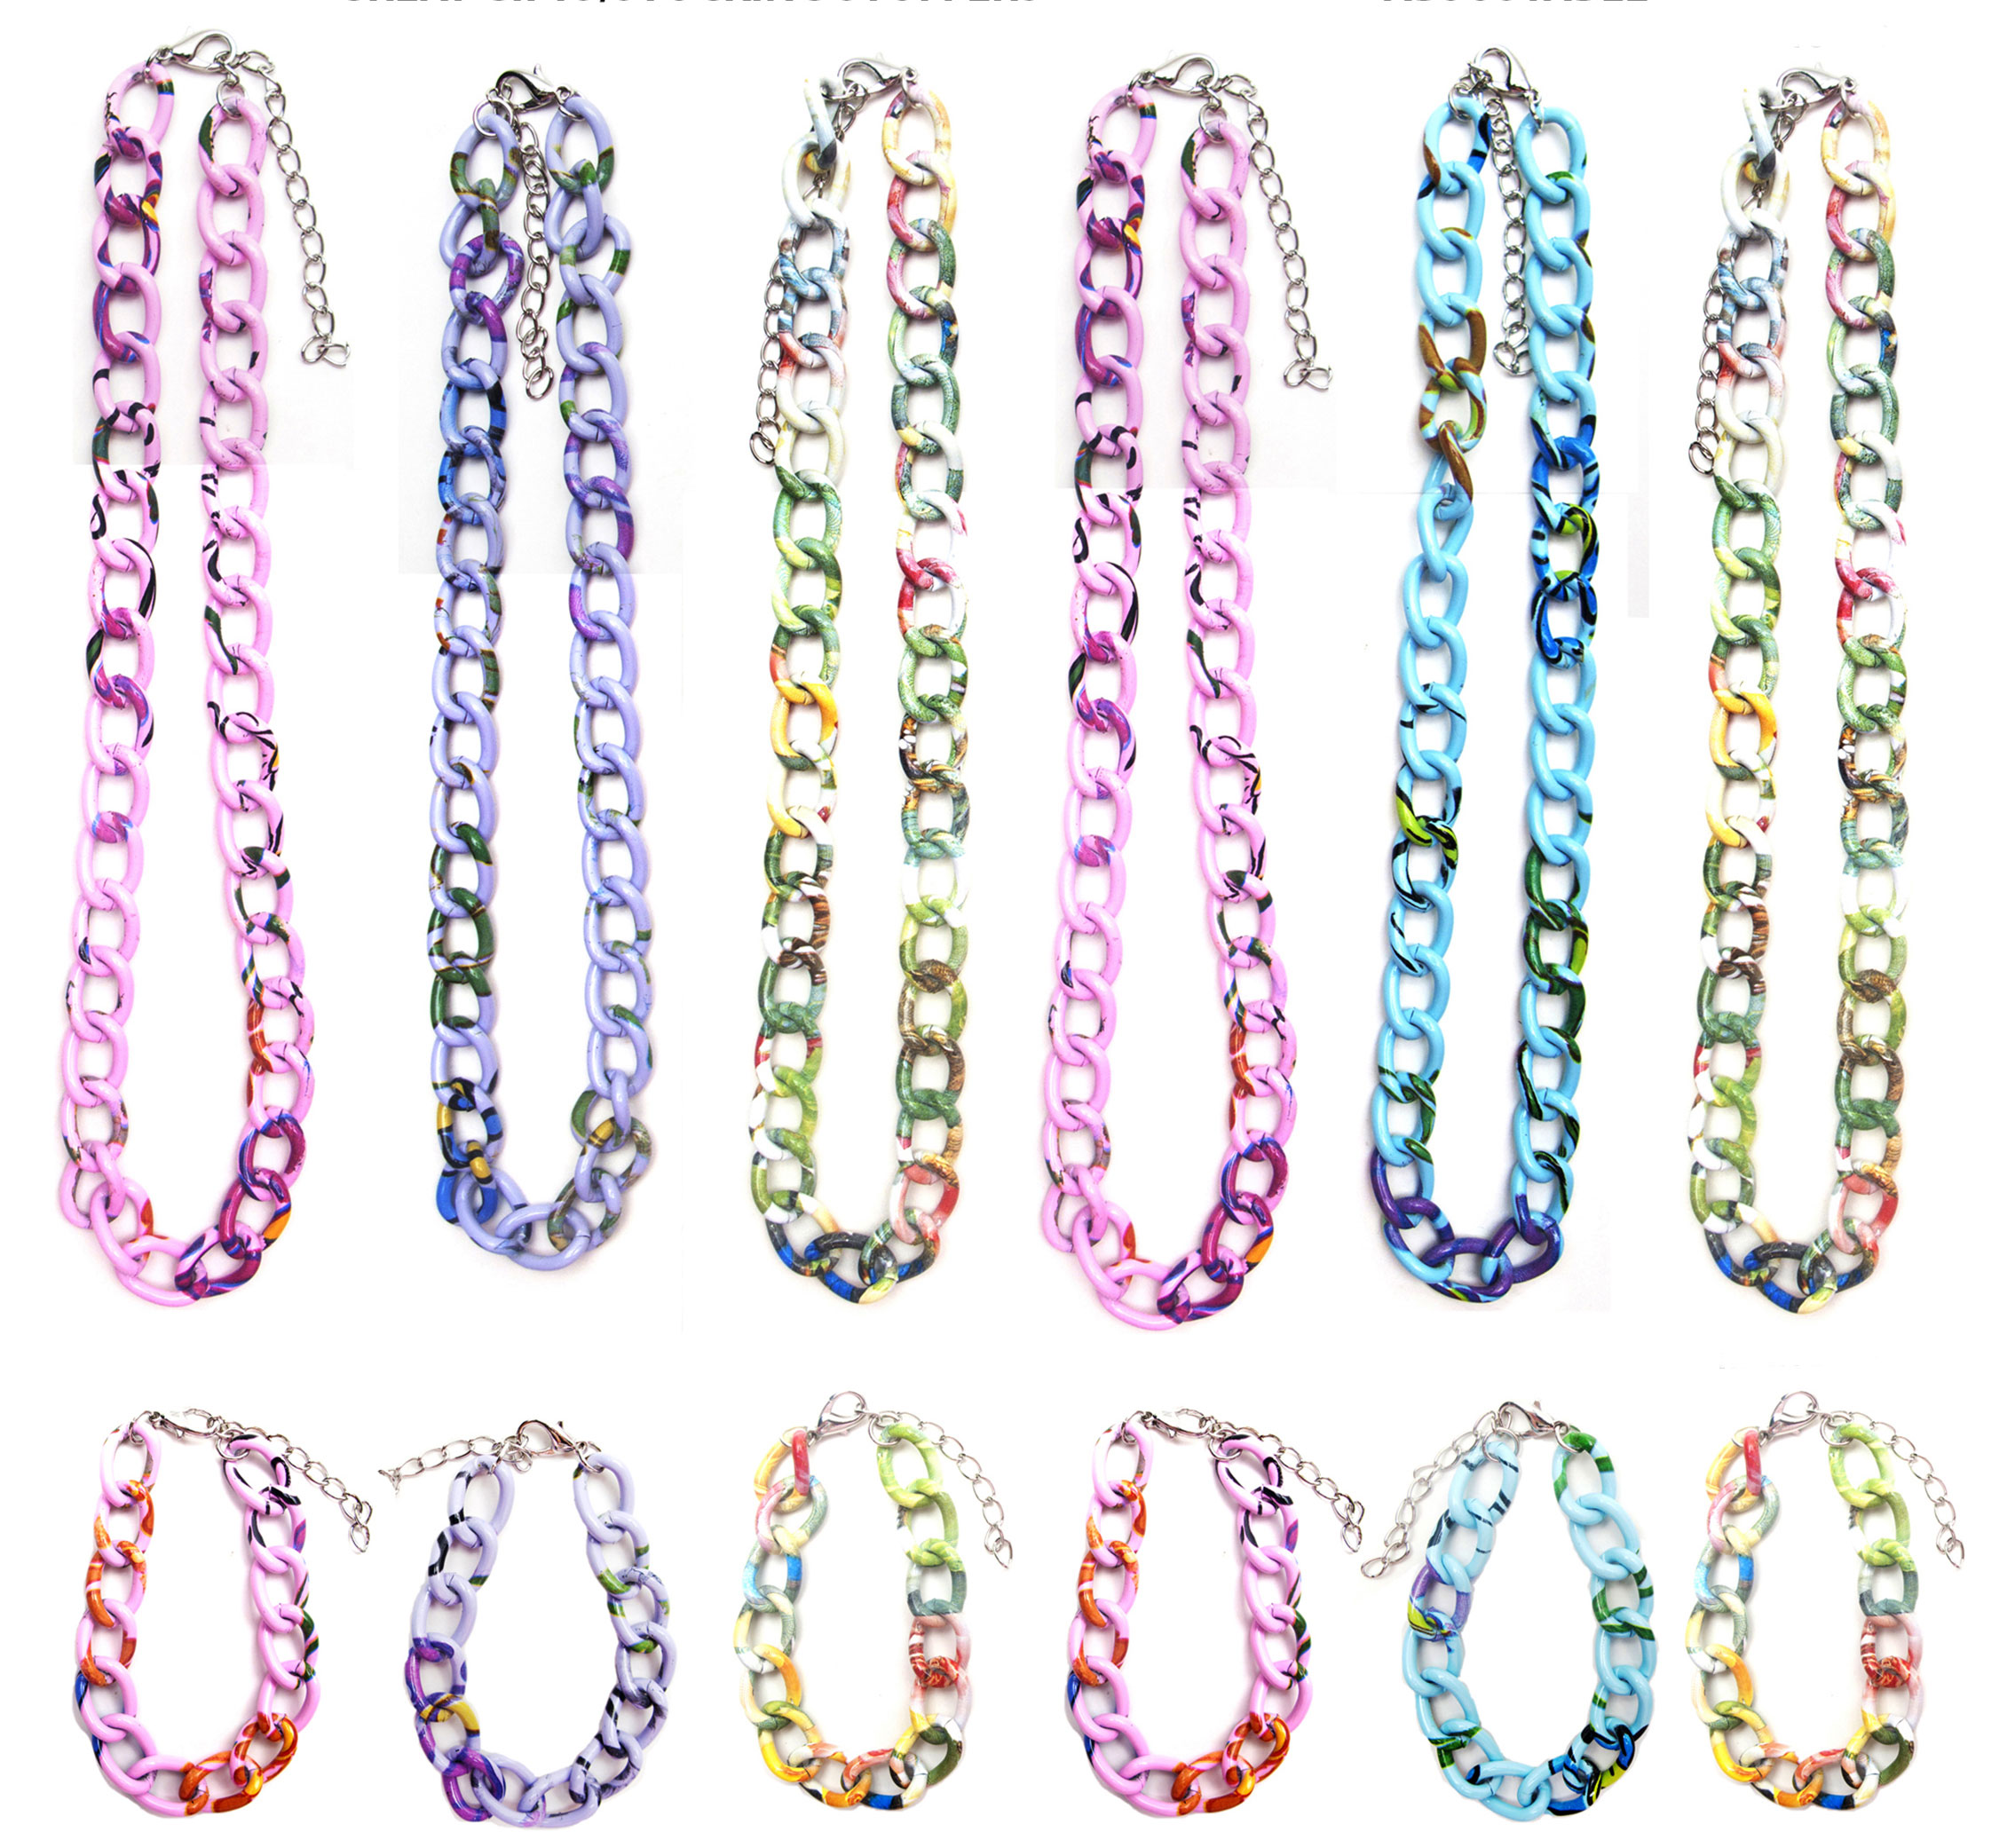 Frogsac 12 Pieces Floral Print Metal Link Chain Necklaces & Bracelets Great assortment for all ages